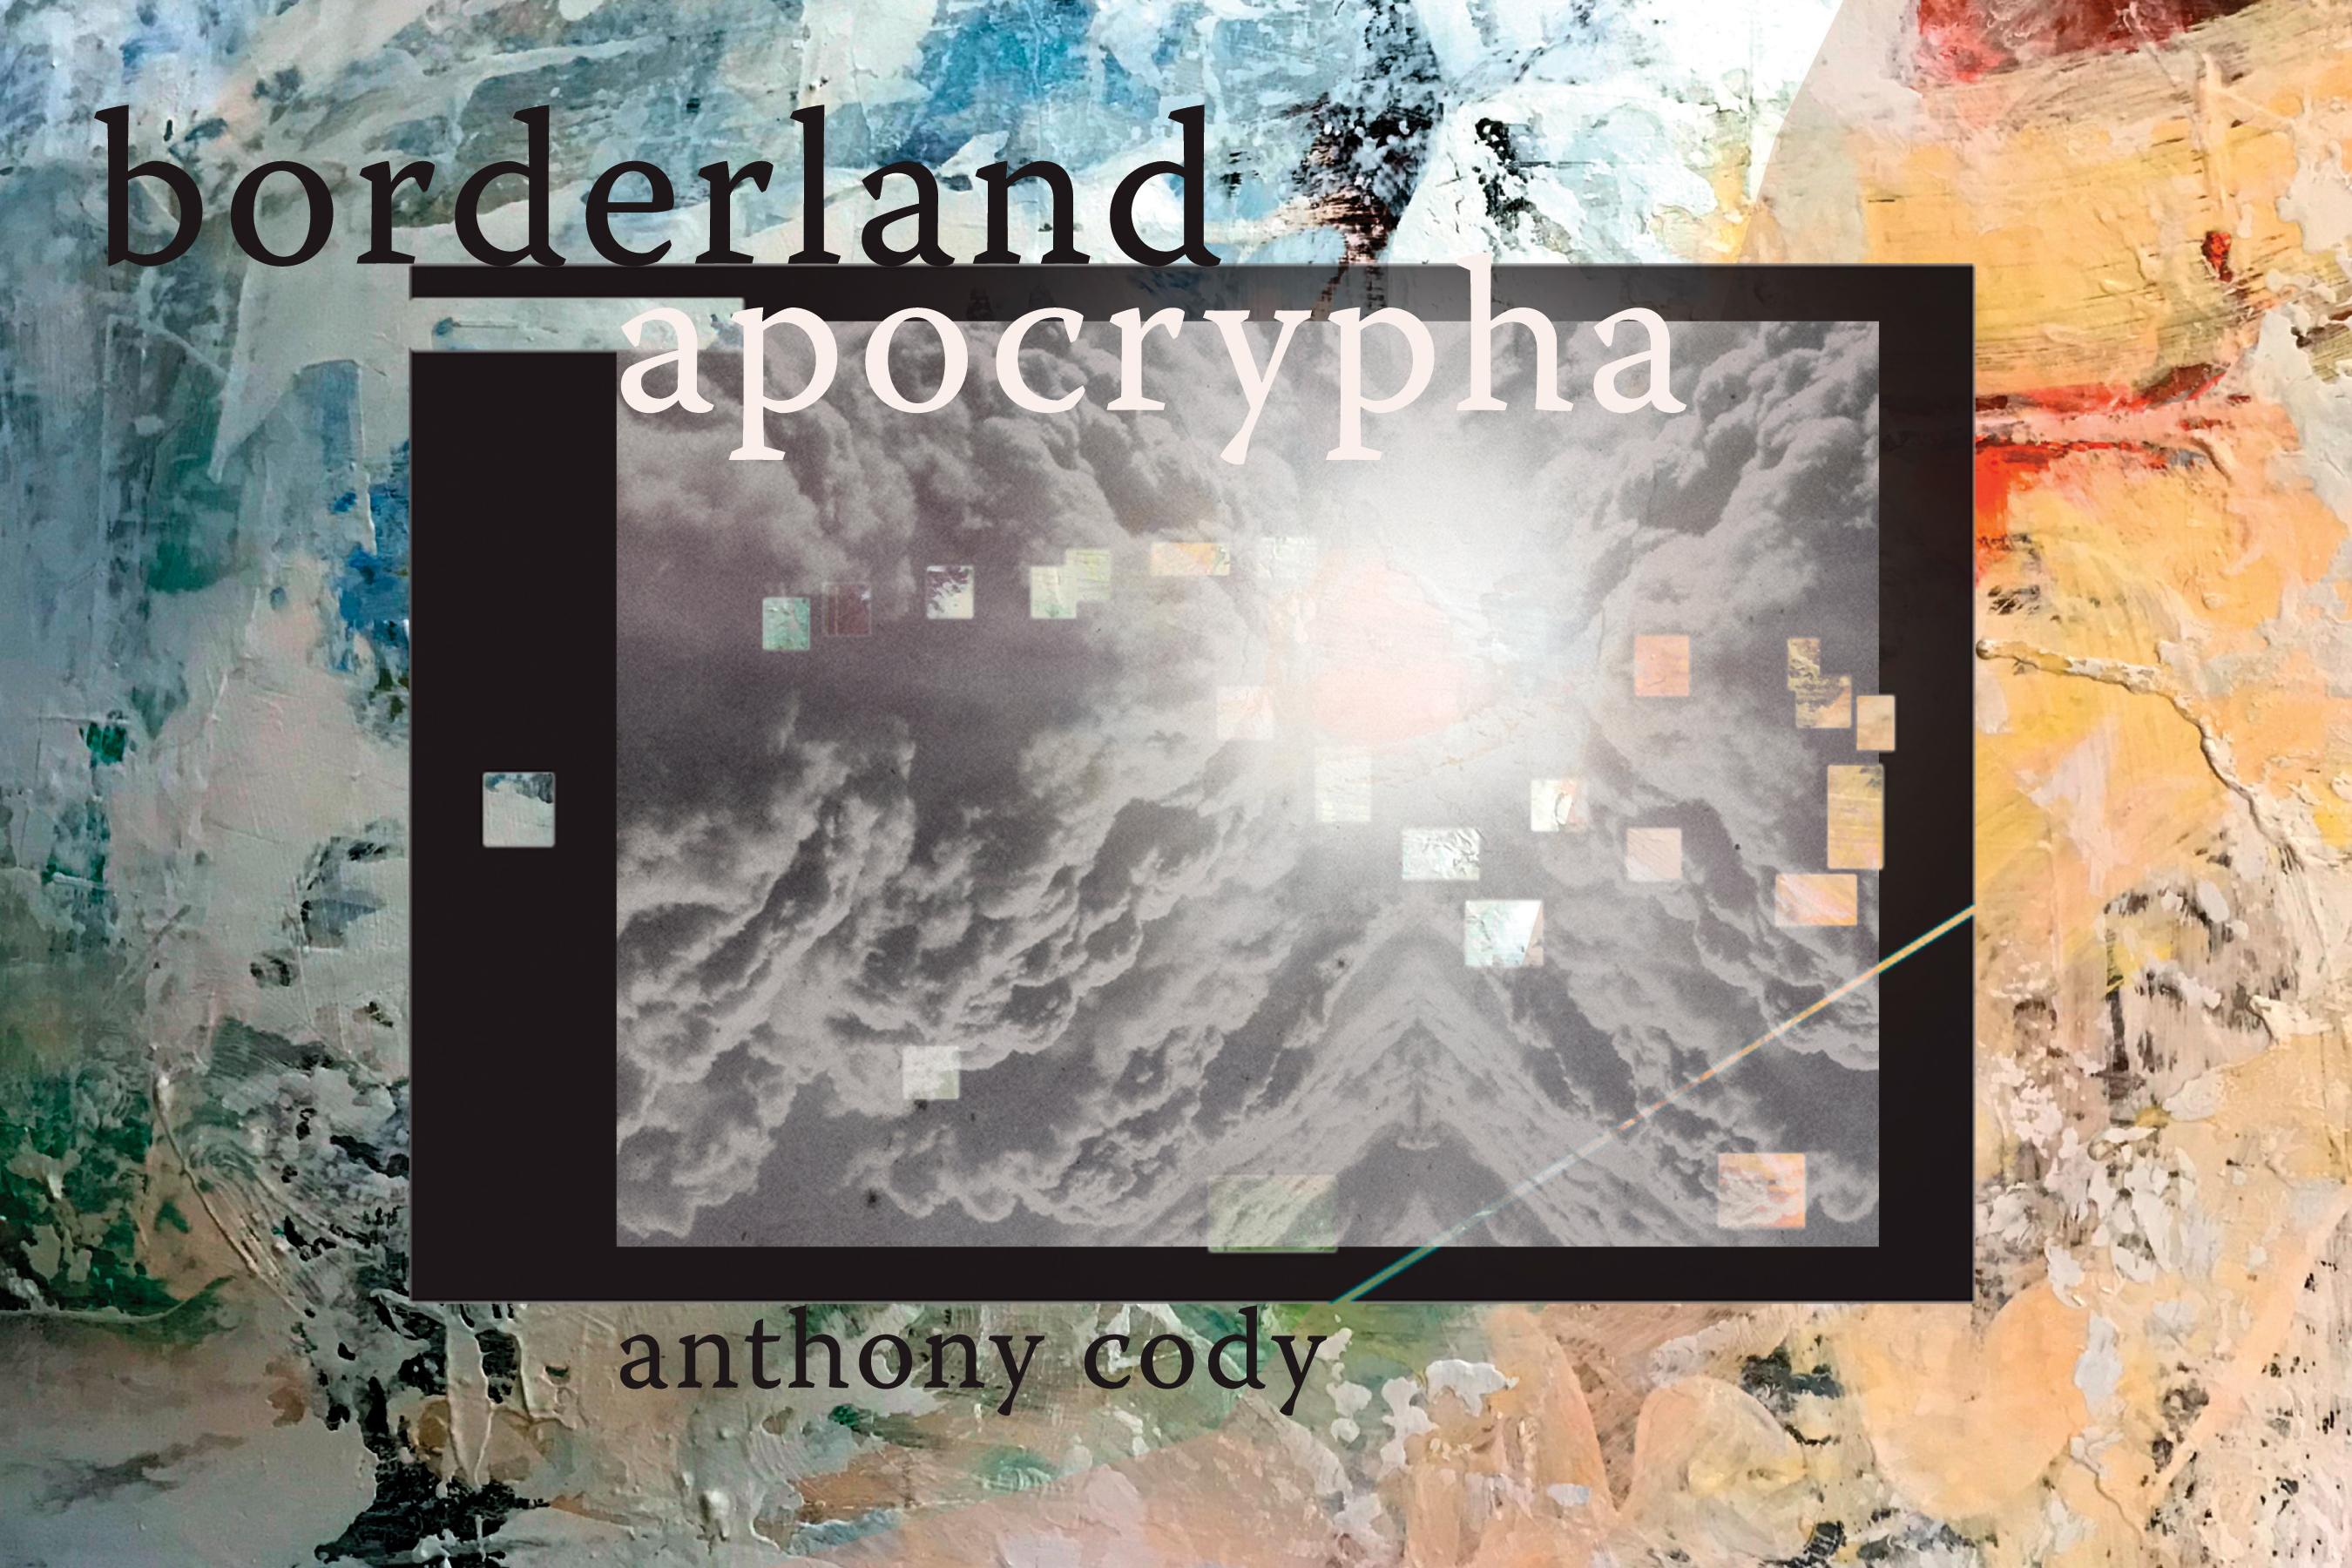 Borderland Apocrypha by Anthony Cody